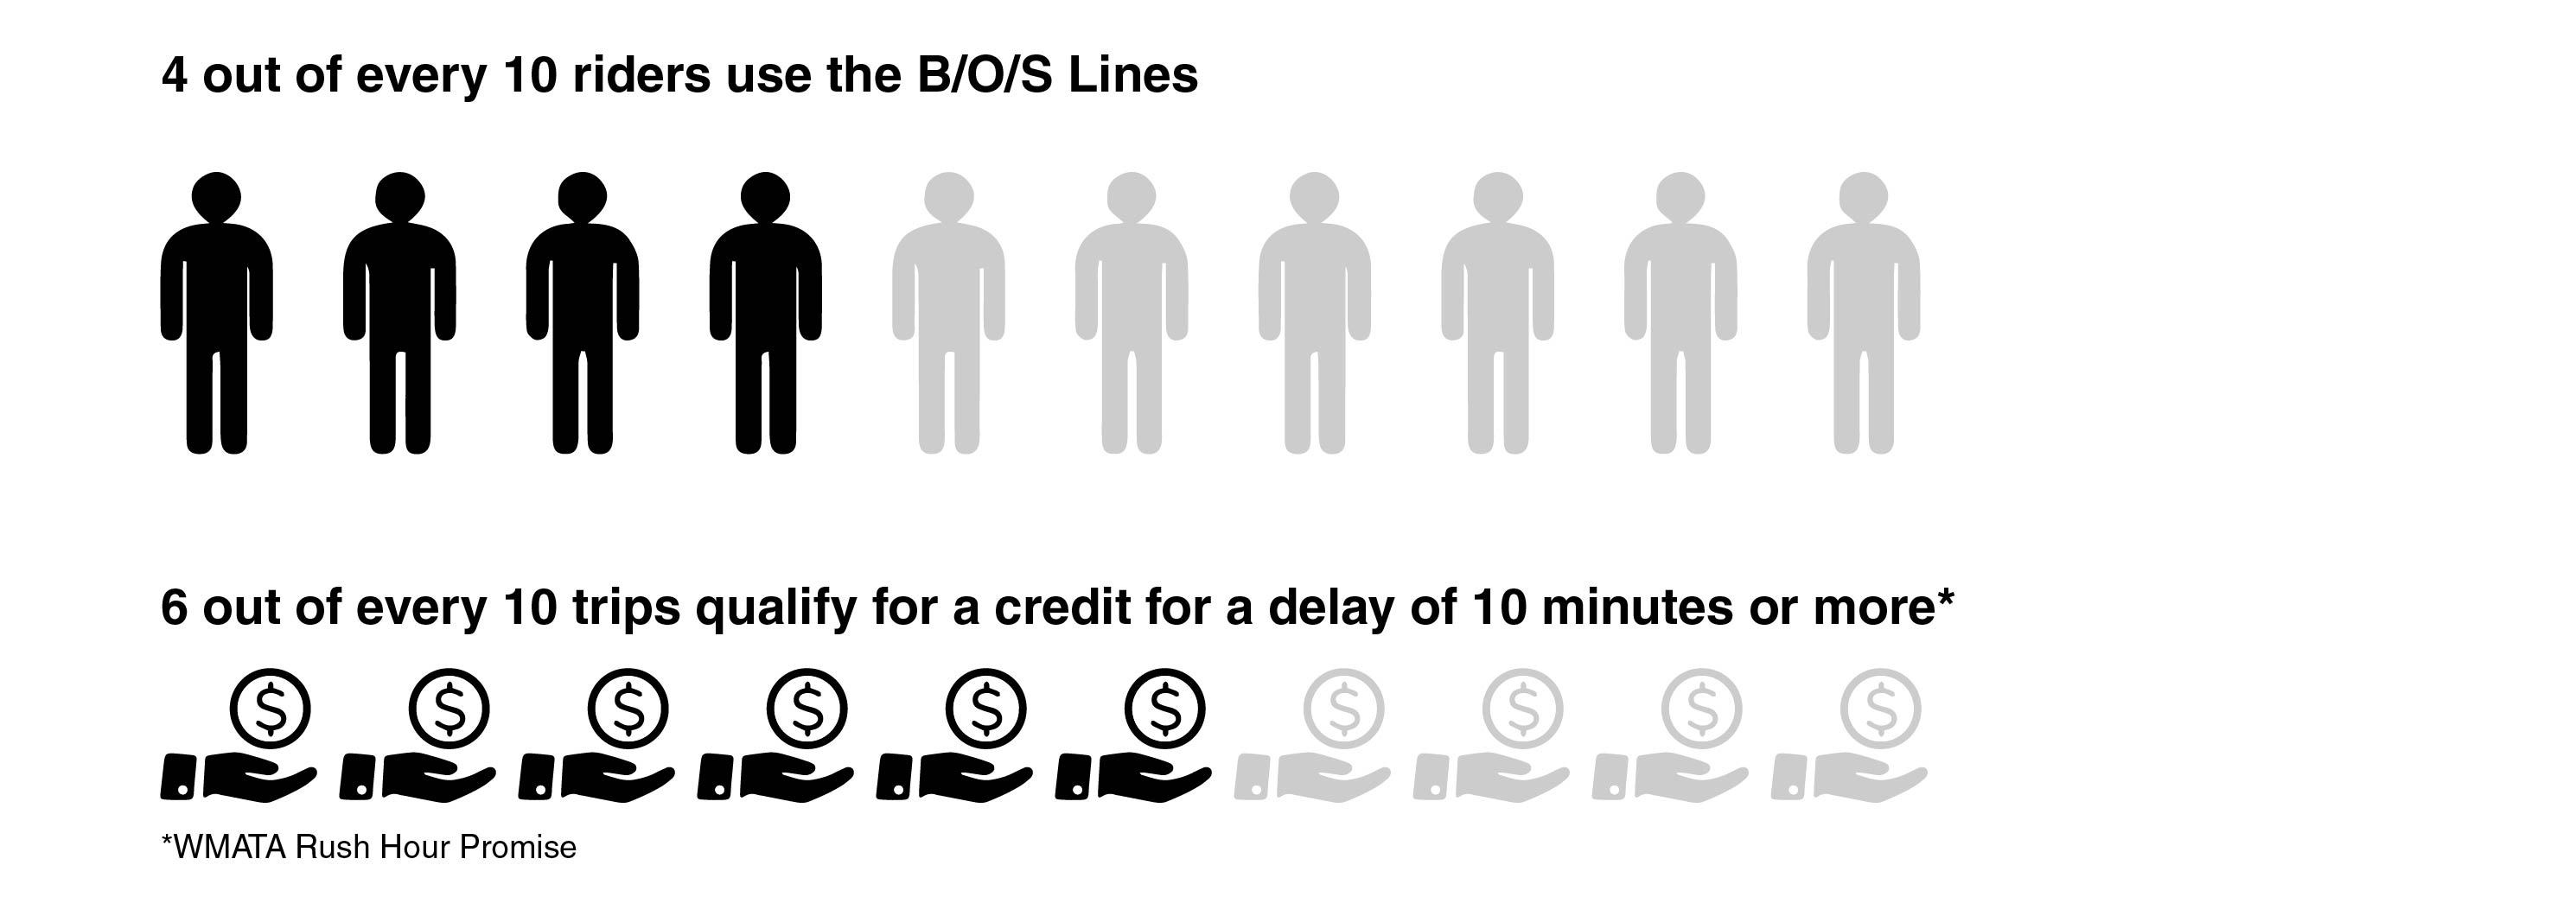 4 out of every 10 riders use the B-O-S lines. 6 out of every 10 trips qualify for a refund for a dleay of 15 minutes or more.*WMATA Rush Hour Promise